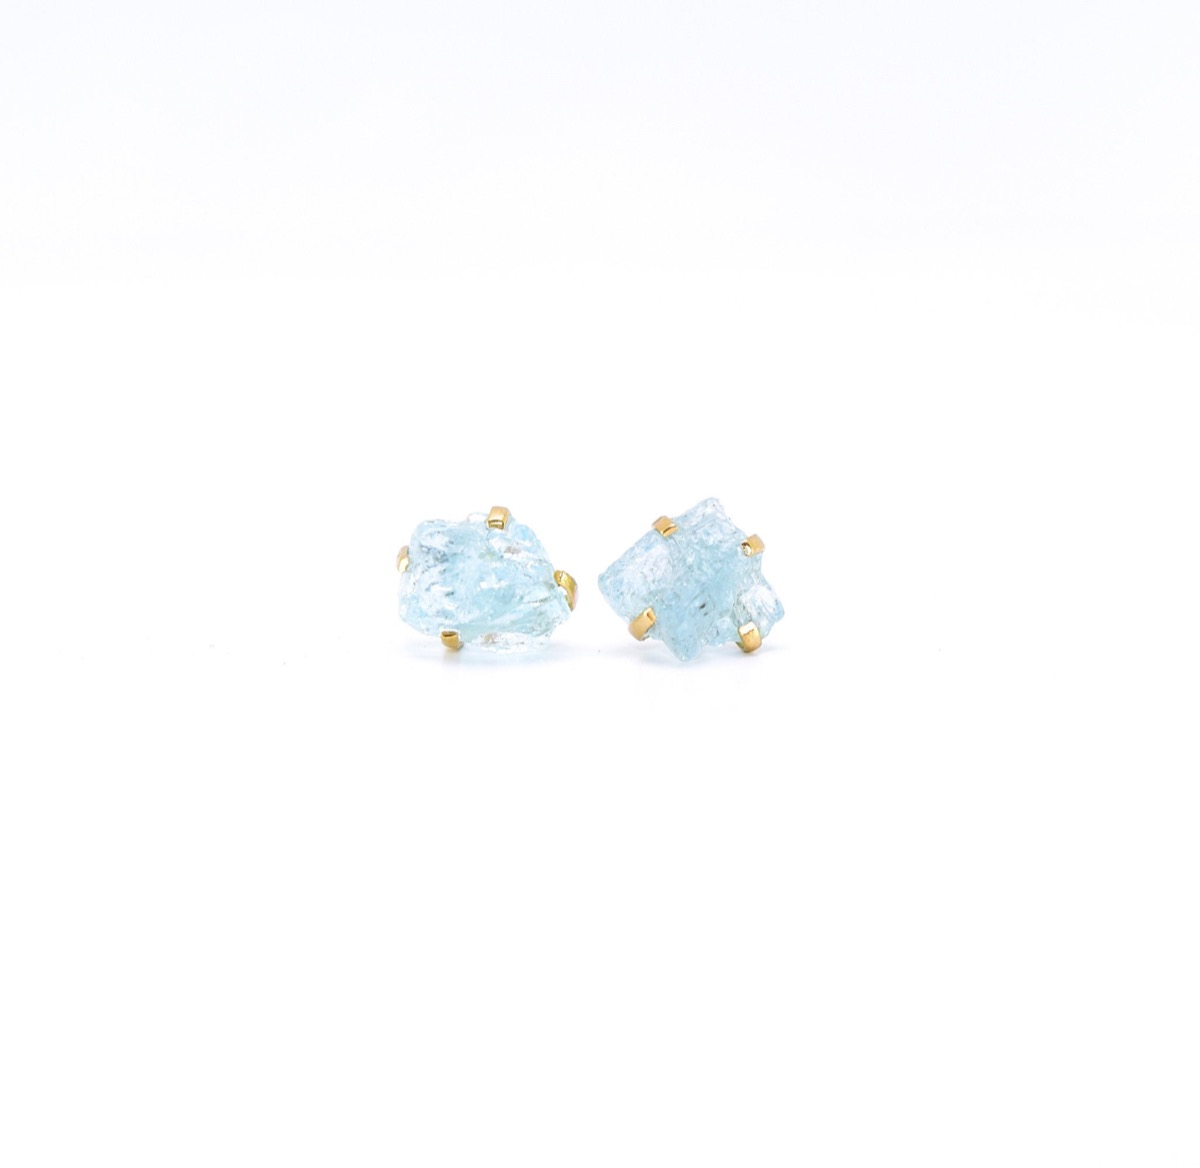 raw aquamarine earrings in gold prong settings, Etsy jewelry